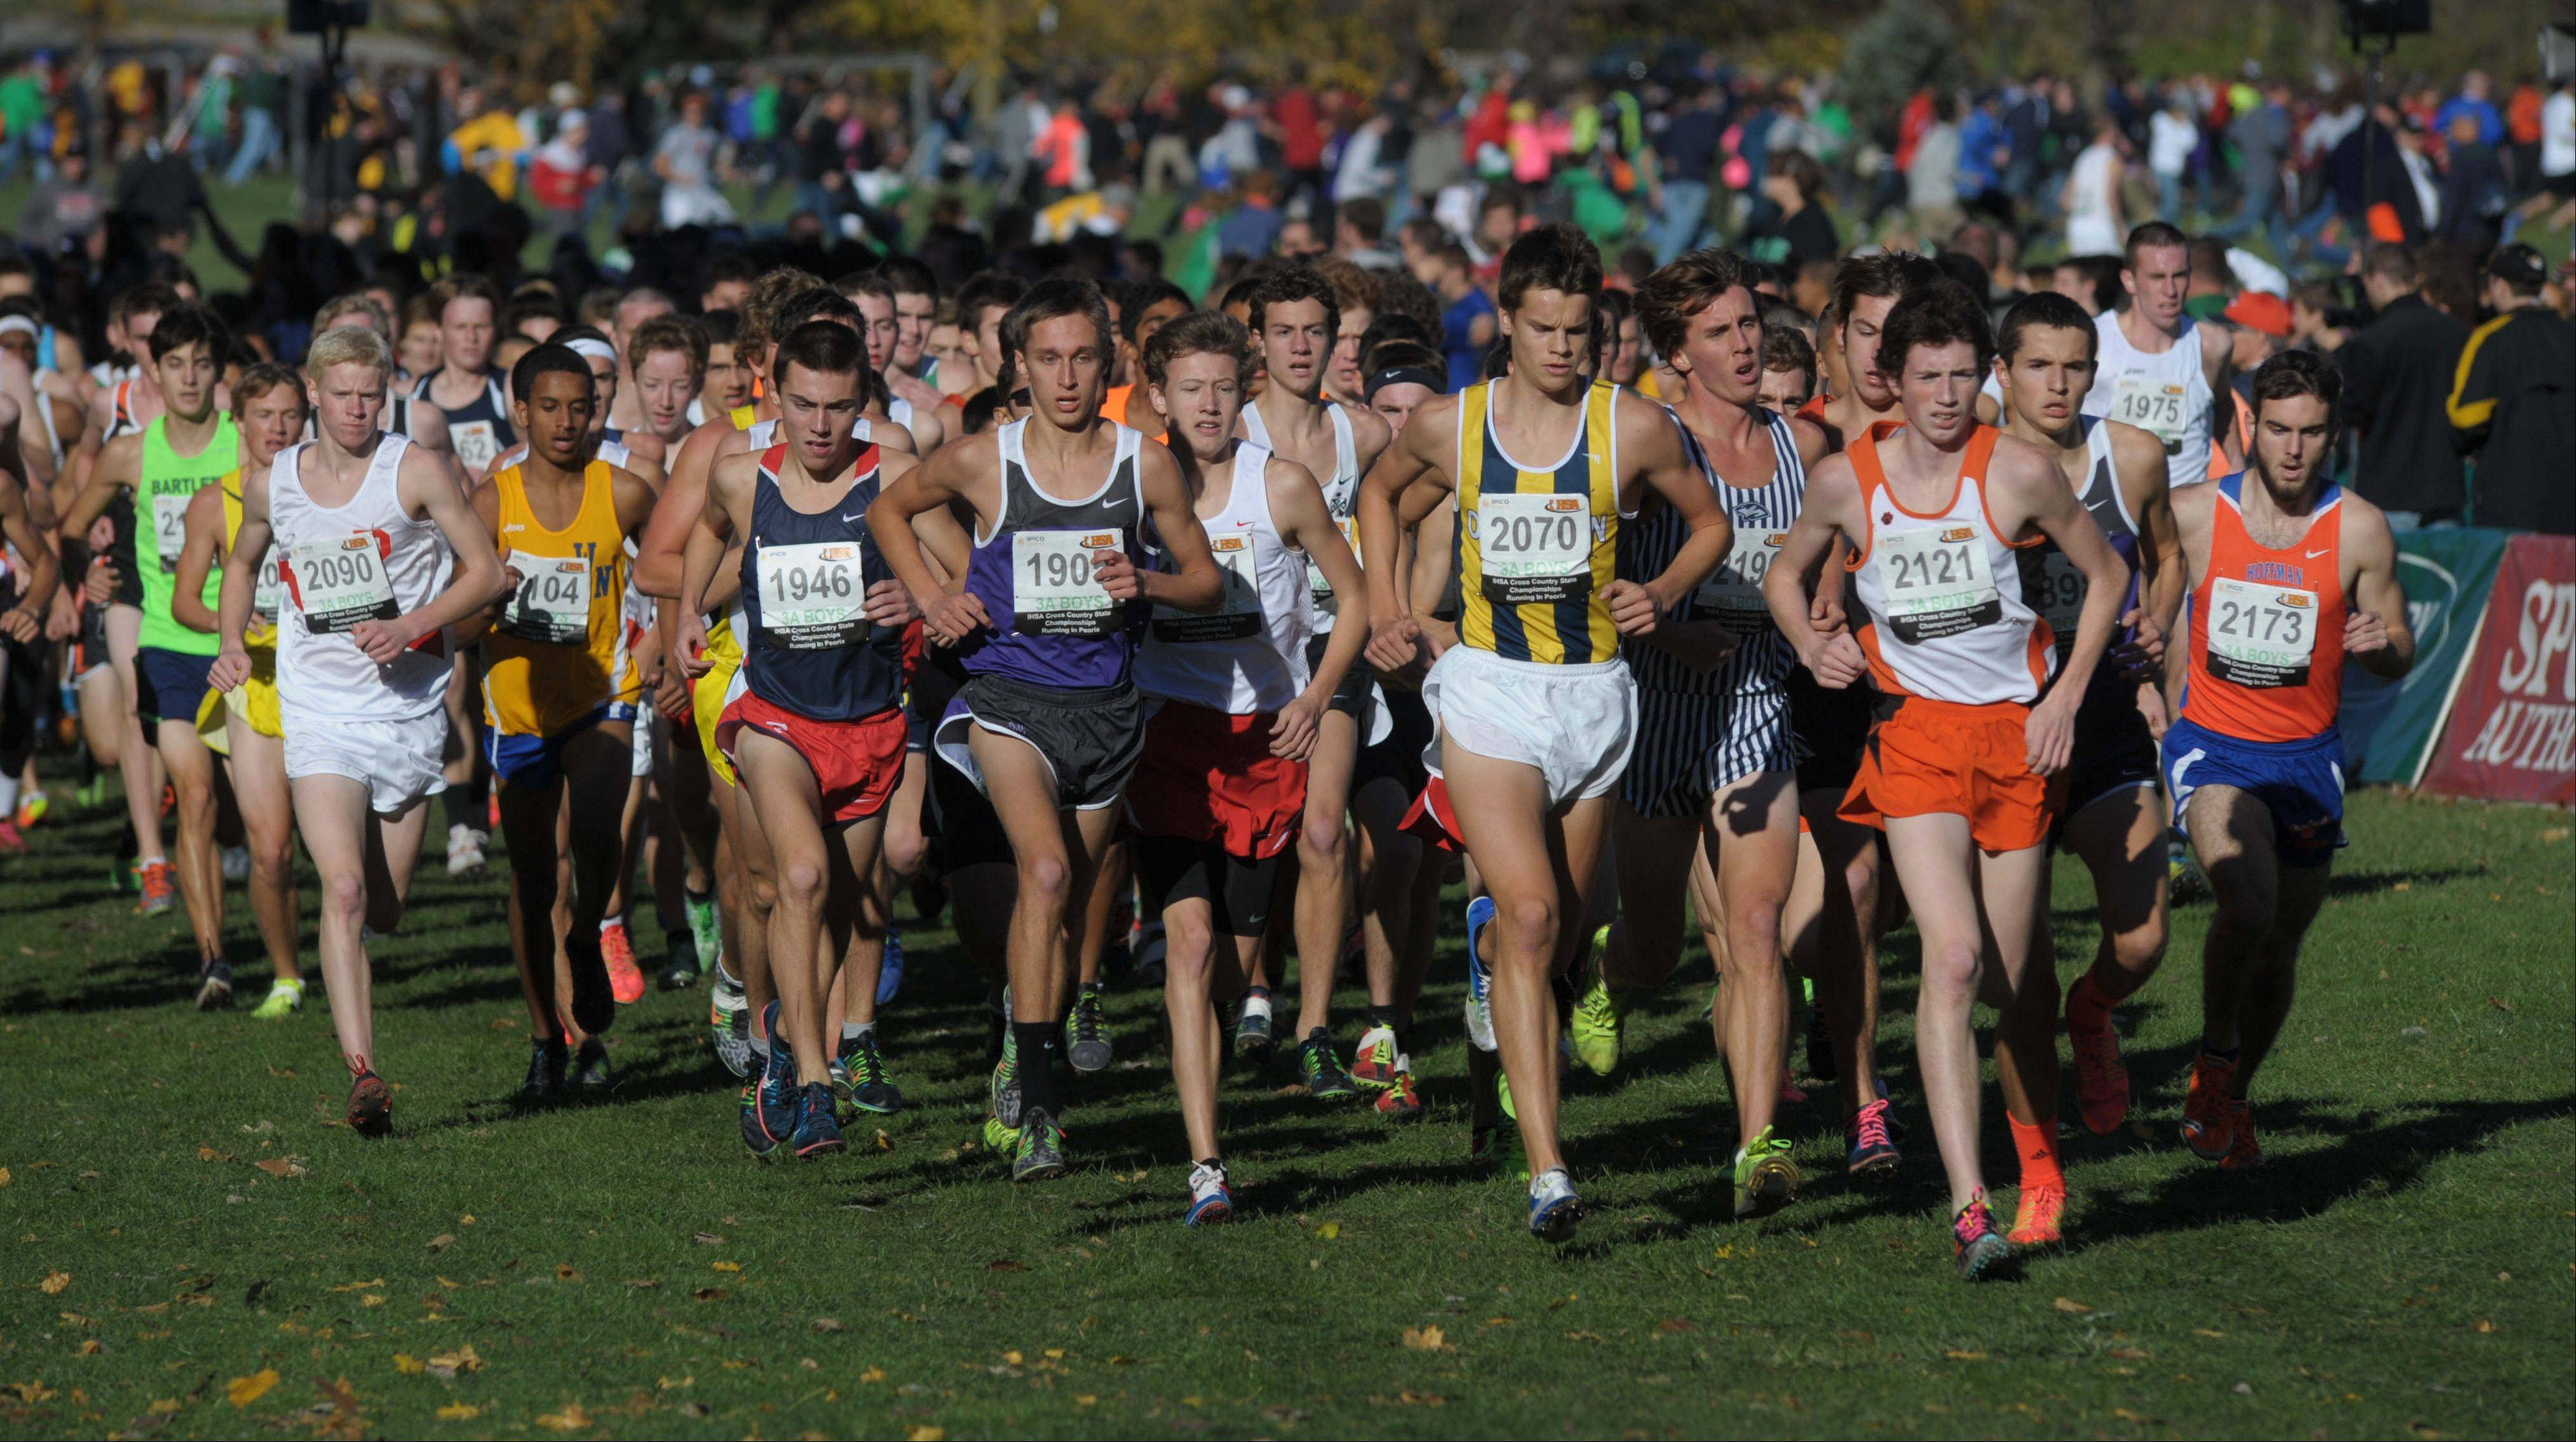 Images from the IHSA boys state cross country finals in Peoria Saturday, November 9, 2013.